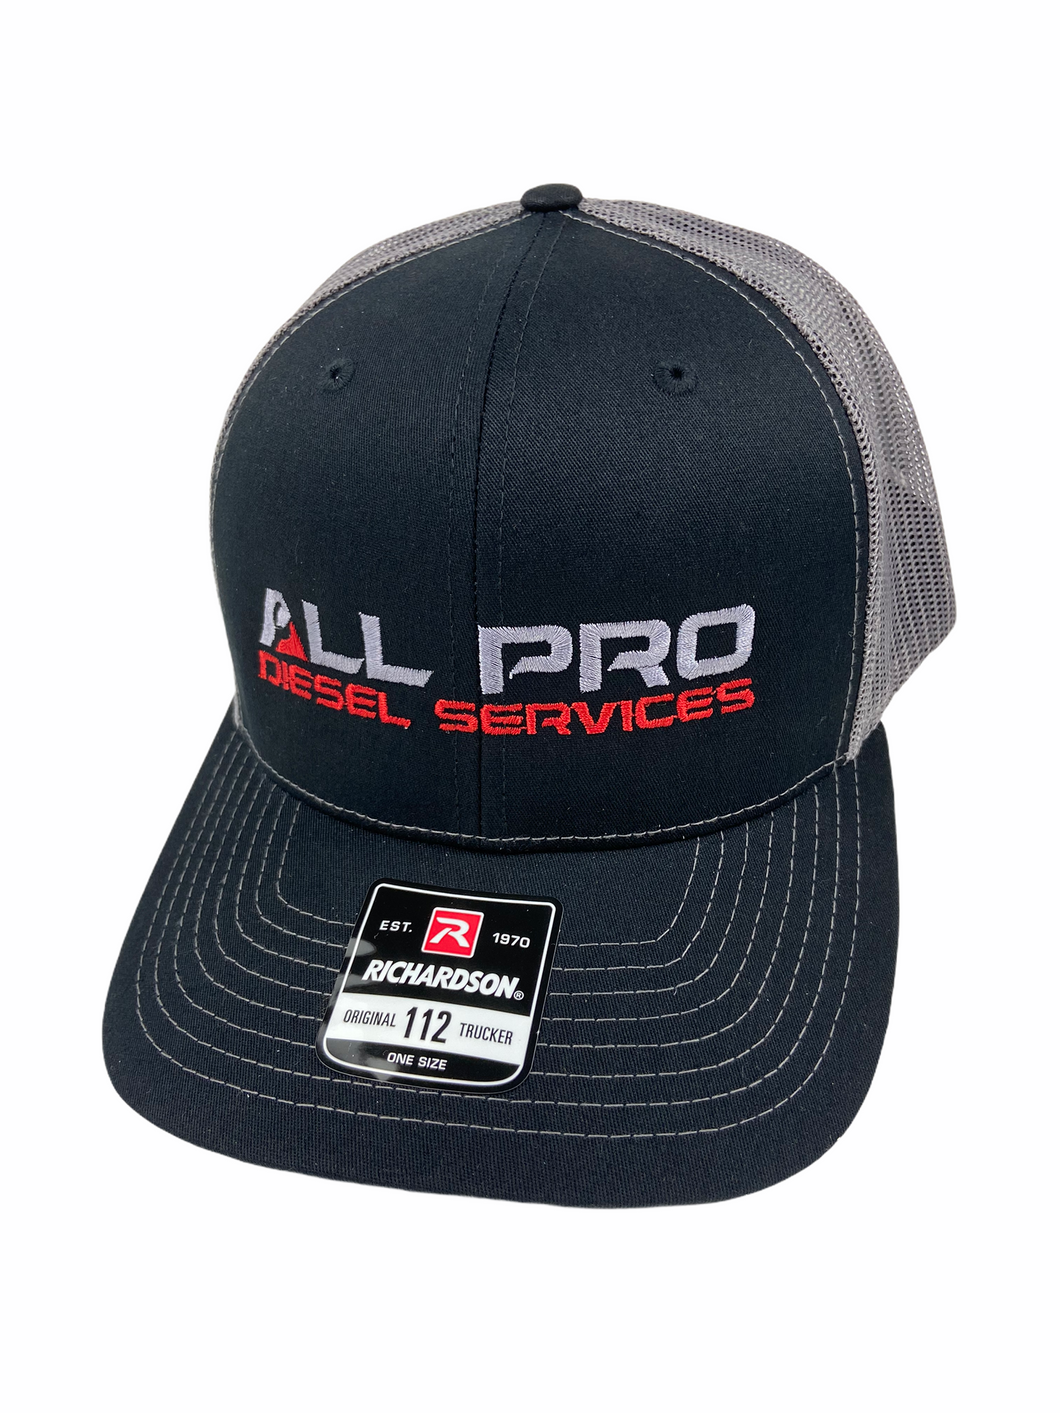 All Pro Diesel Services Black and Grey Richardson 112 Trucker Hat